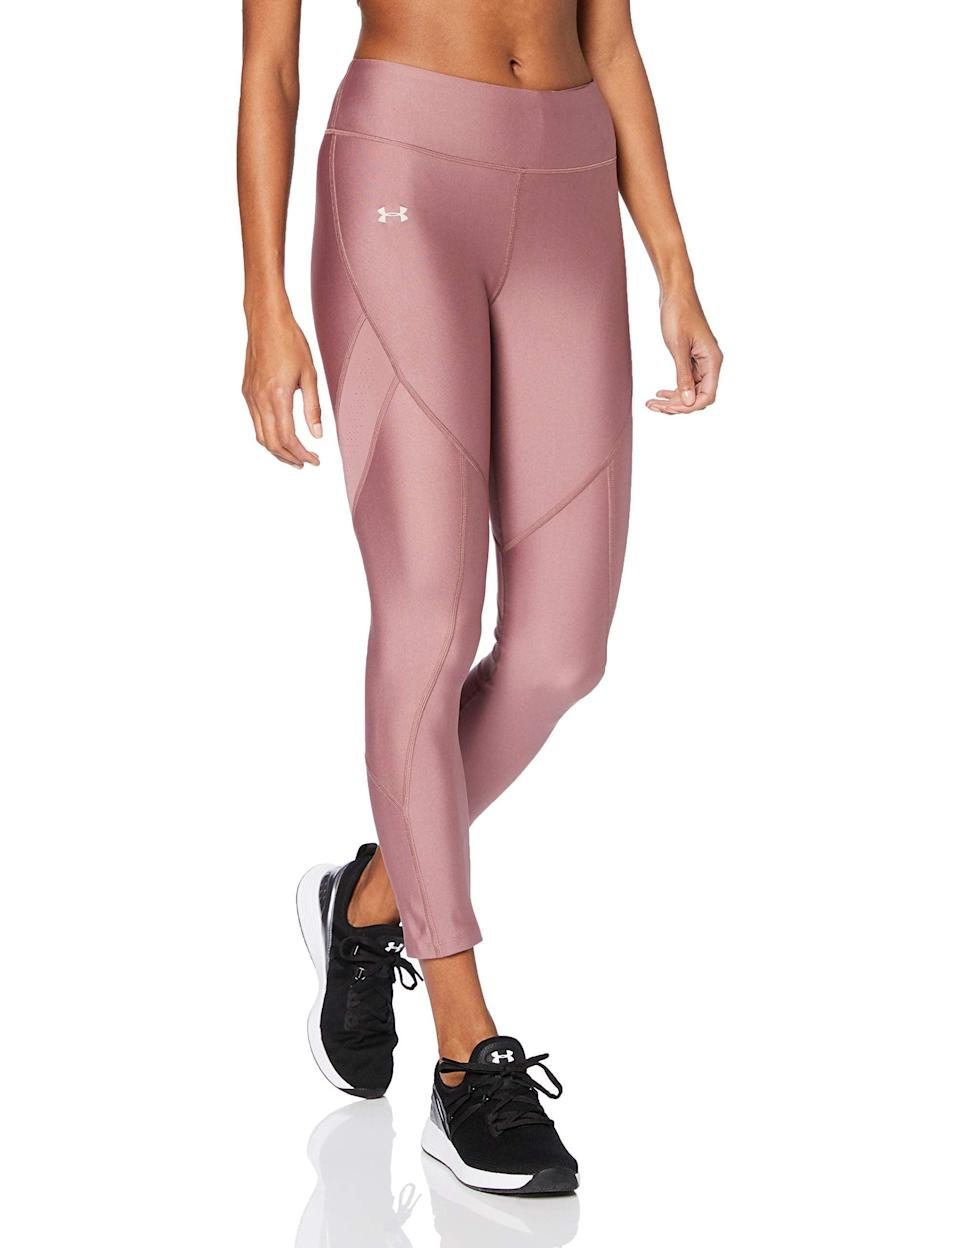 "<br><br><strong>Under Armour</strong> HeatGear Armour Novelty Ankle Crop Leggings, $, available at <a href=""https://amzn.to/314wcJ4"" rel=""nofollow noopener"" target=""_blank"" data-ylk=""slk:Amazon"" class=""link rapid-noclick-resp"">Amazon</a>"